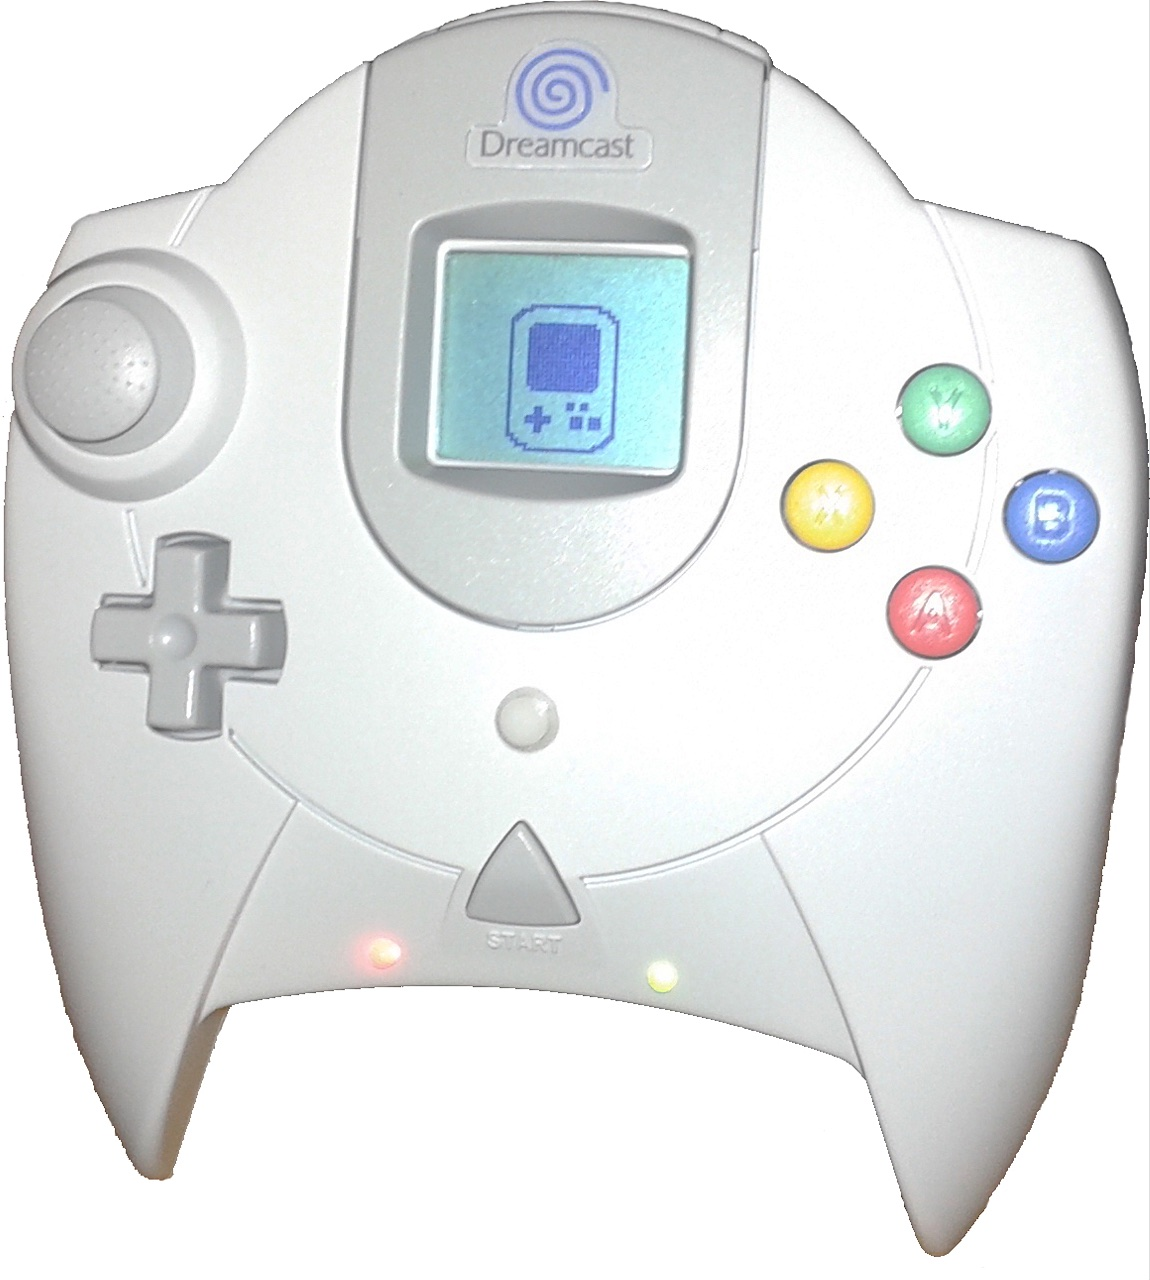 The Dreamcast Junkyard With An External Amplifier You Need To Supply A Speakers Sp2003